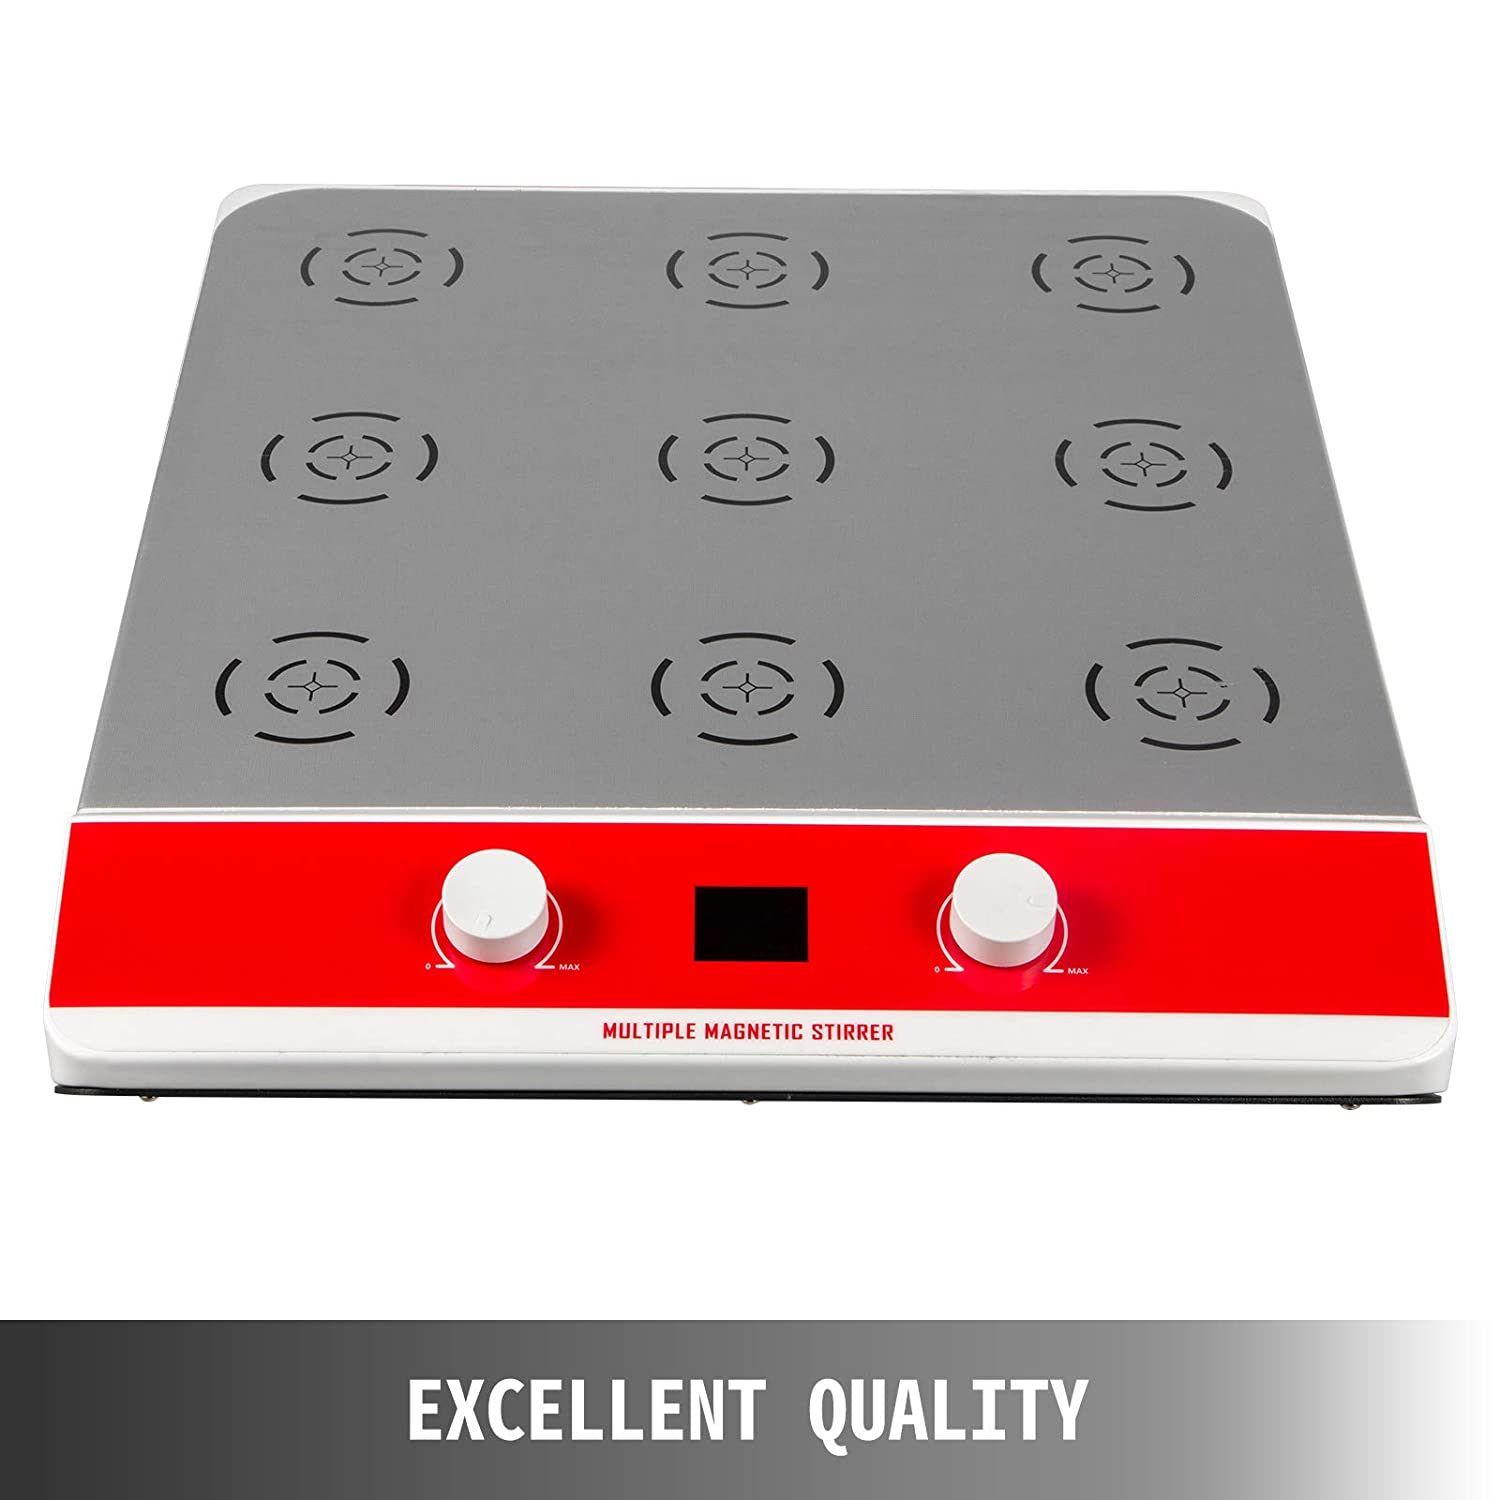 Lab(9 Stirring) Classrooms VEVOR Magnetic Stirrer Mixer 9 Stirring,Magnetic Lab Stirrer Plate 1000Ml,Laboratory Magnetic Stirrer LCD Display Magnetic Mixer Kit for Scientific Research Clinics